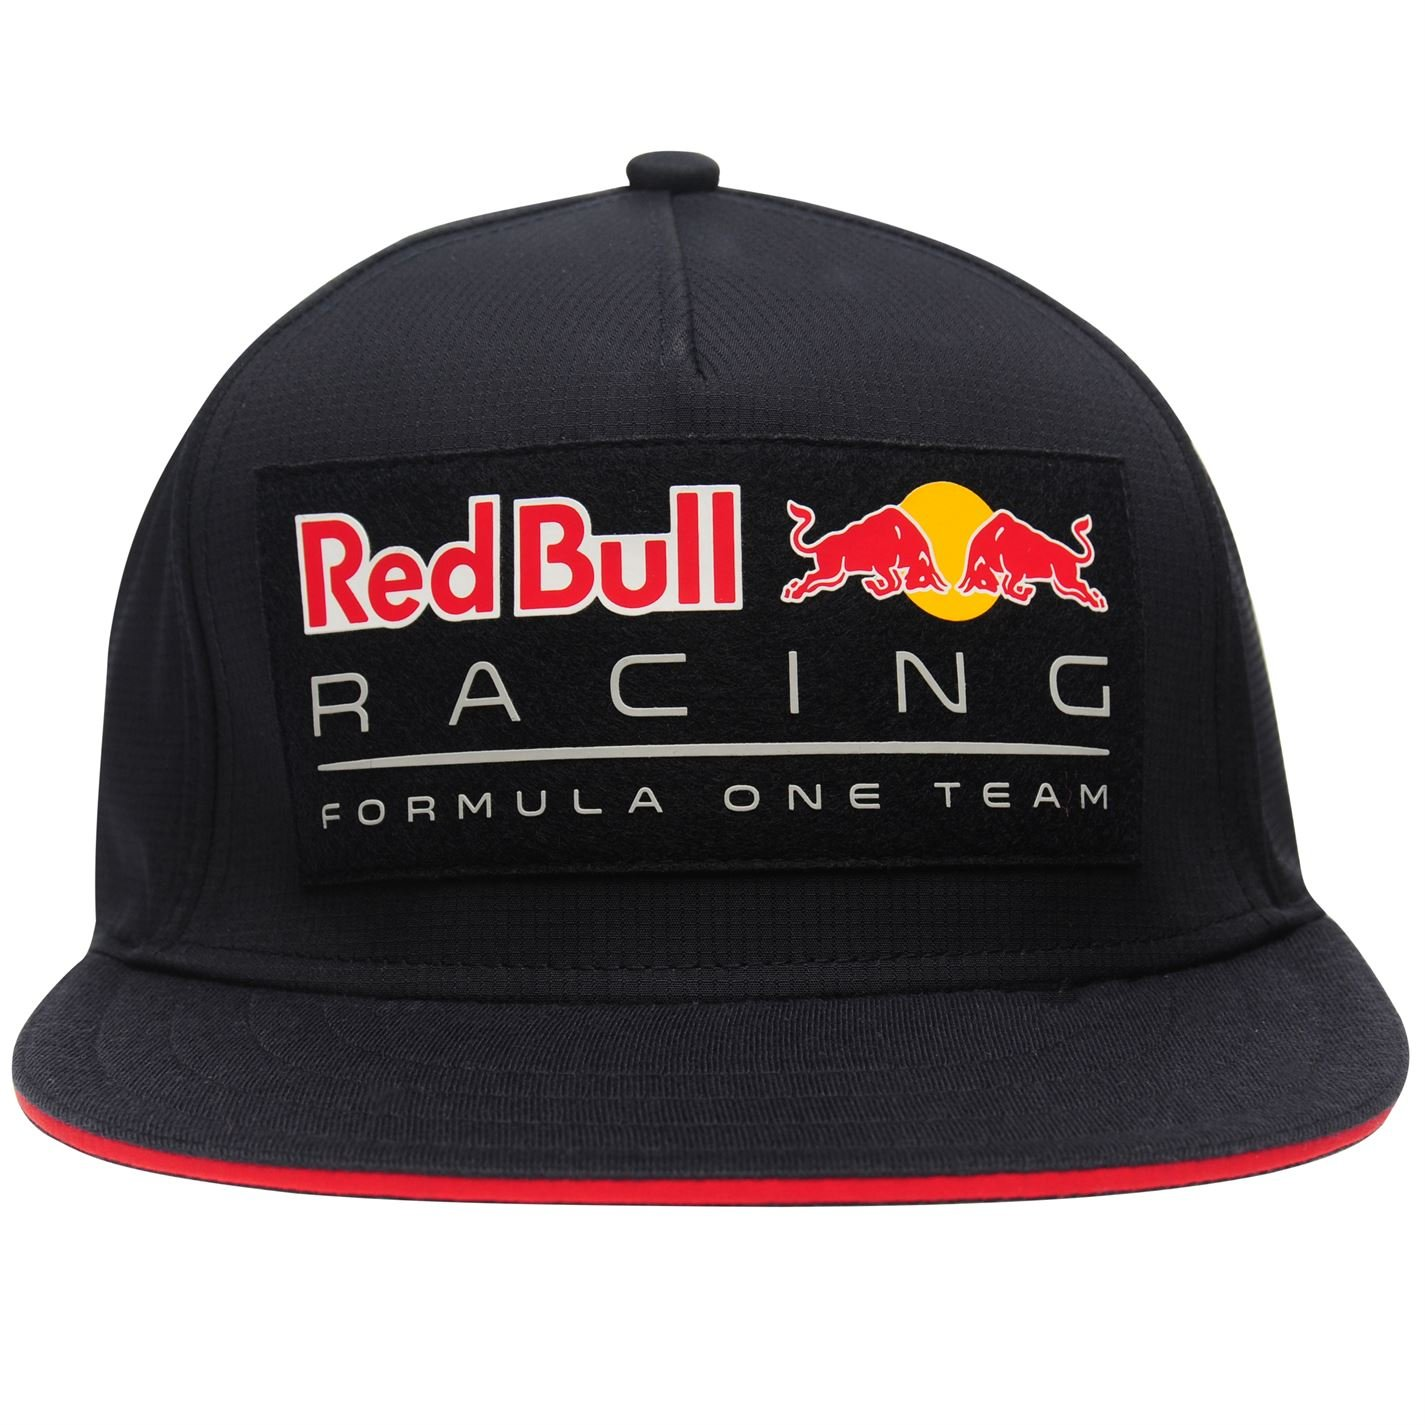 0c7936241e8 Red Bull Racing Adult Puma Lifestyle Flat Brim 2018 Cap